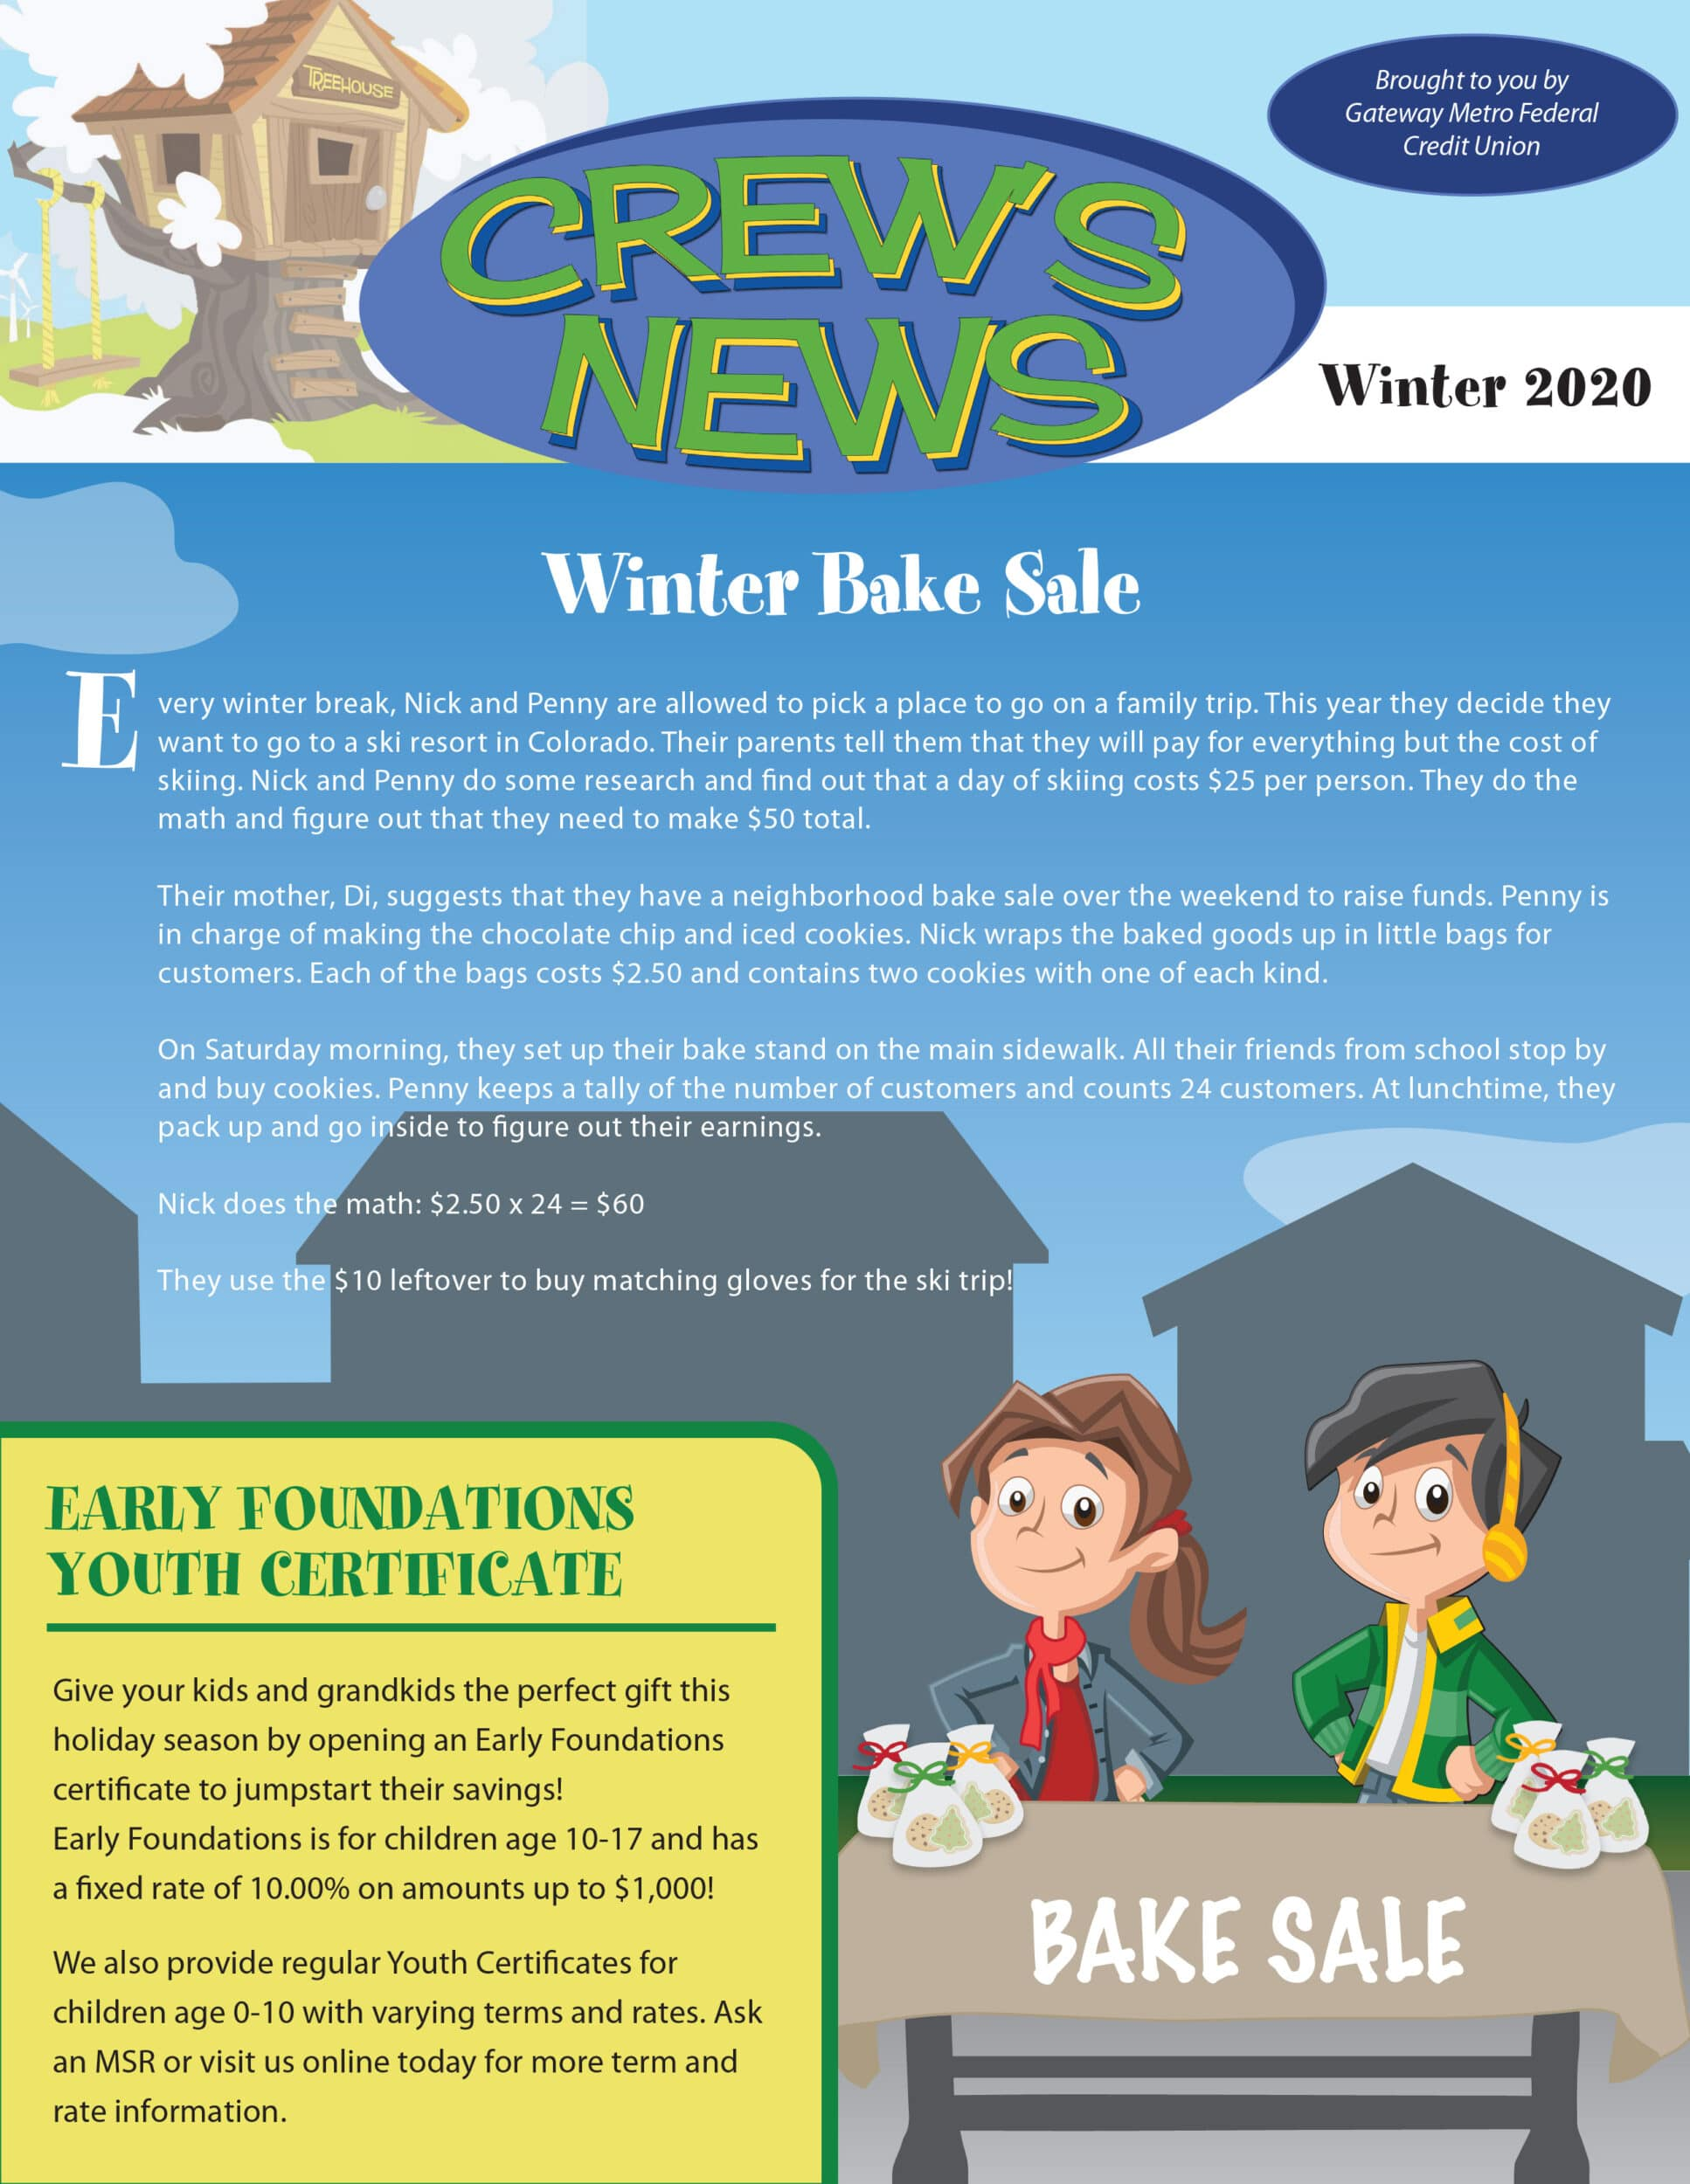 This image links to the Winter 2020 'Crews News' newsletter PDF